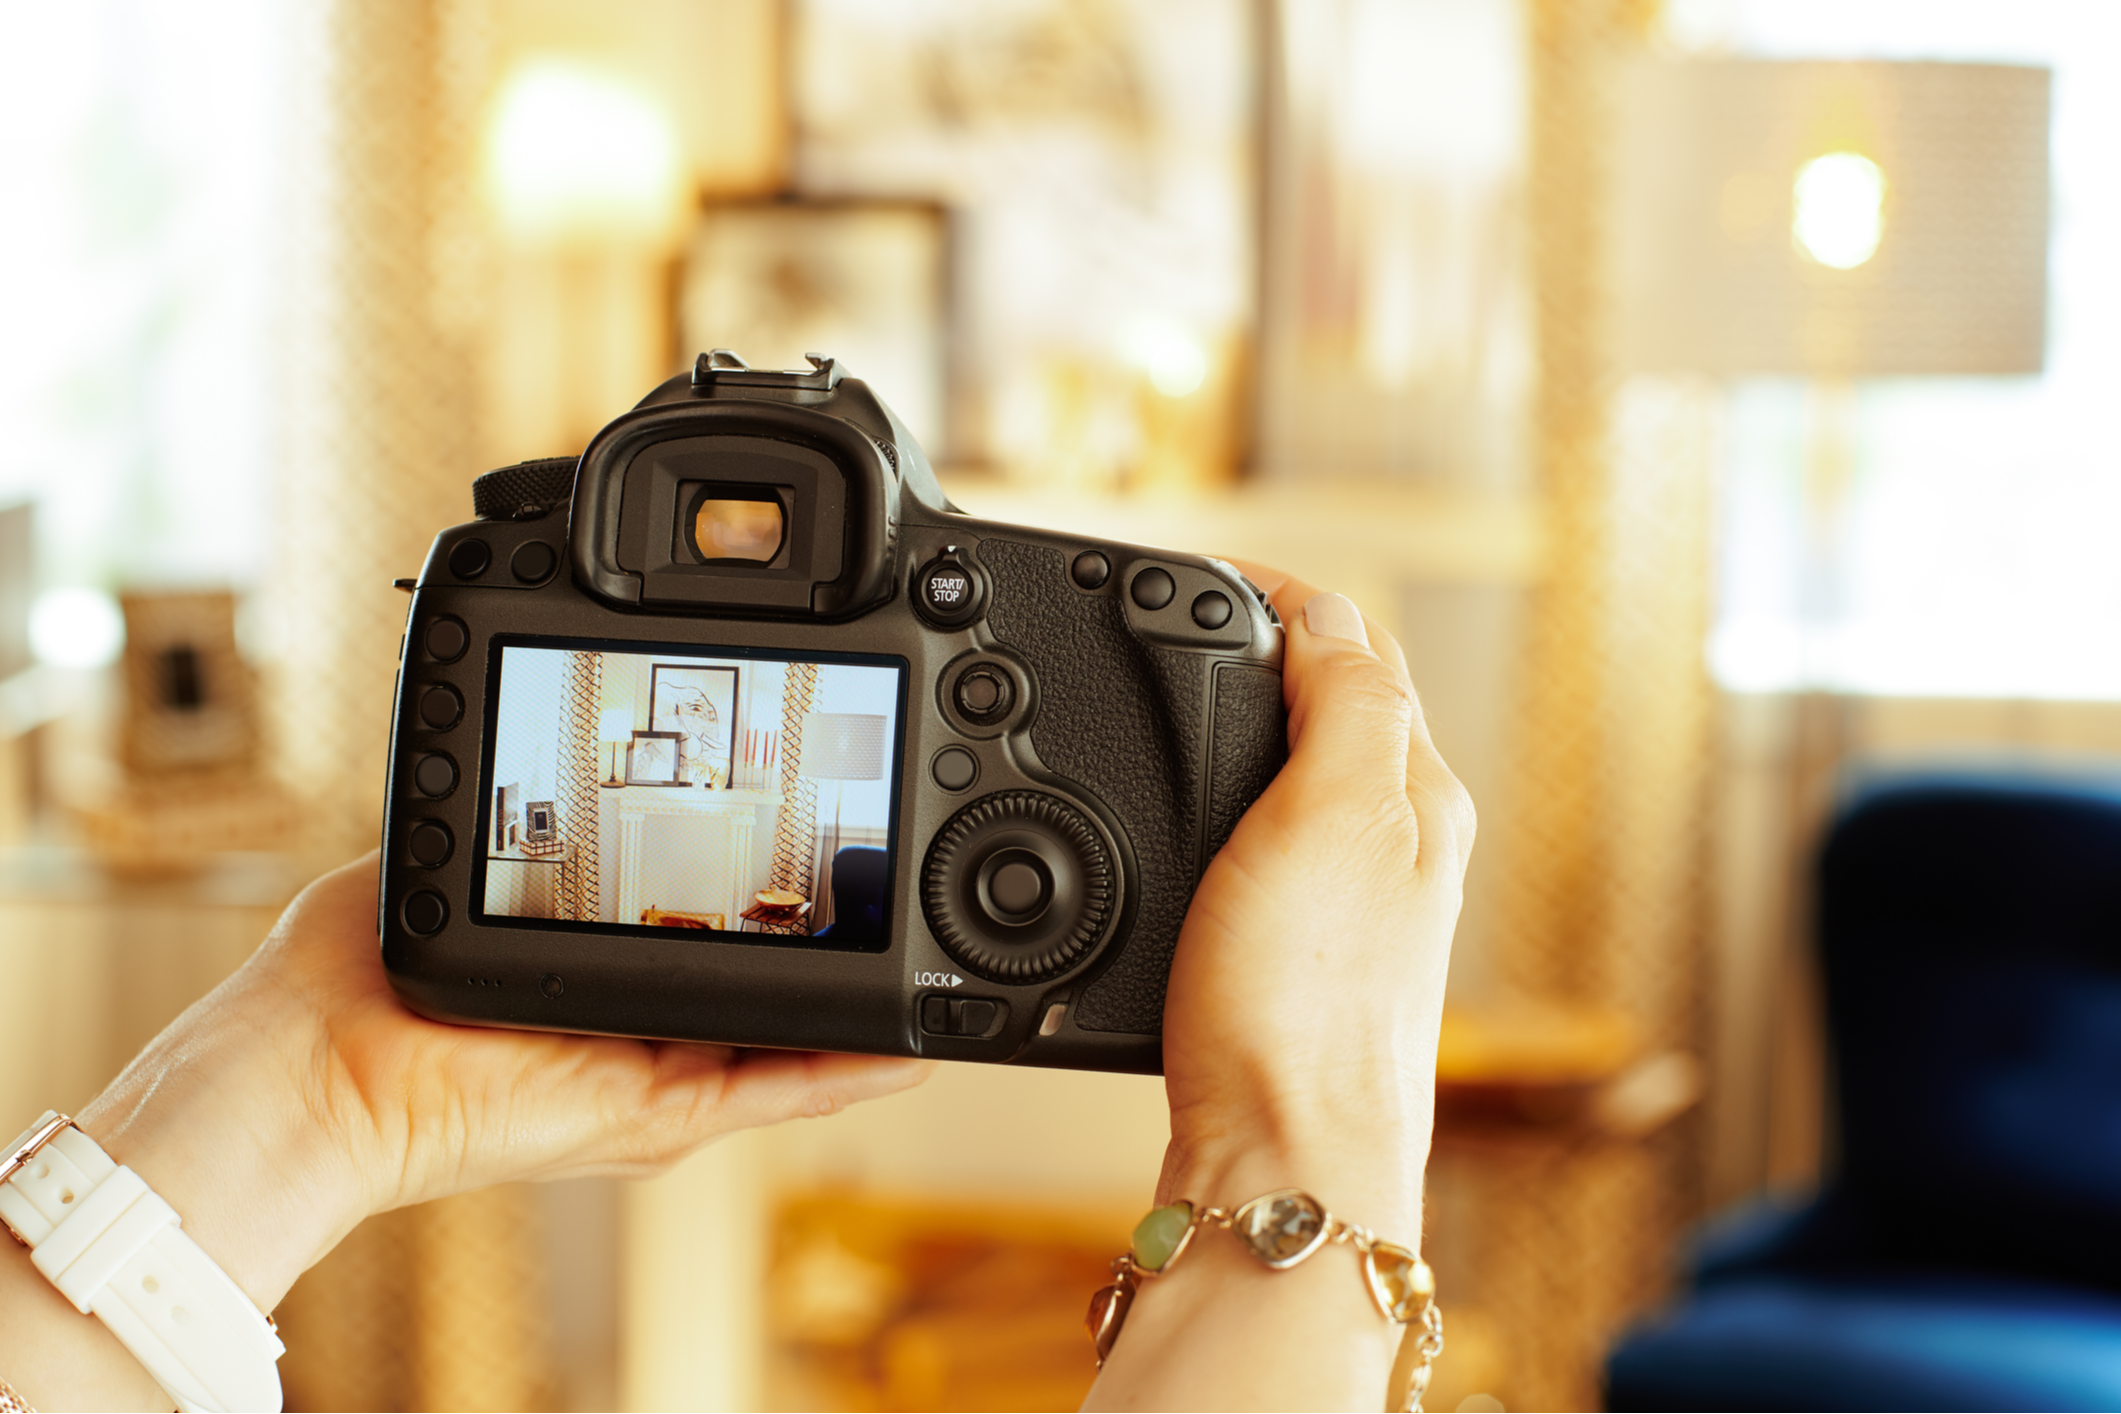 Good real estate photography is crucial